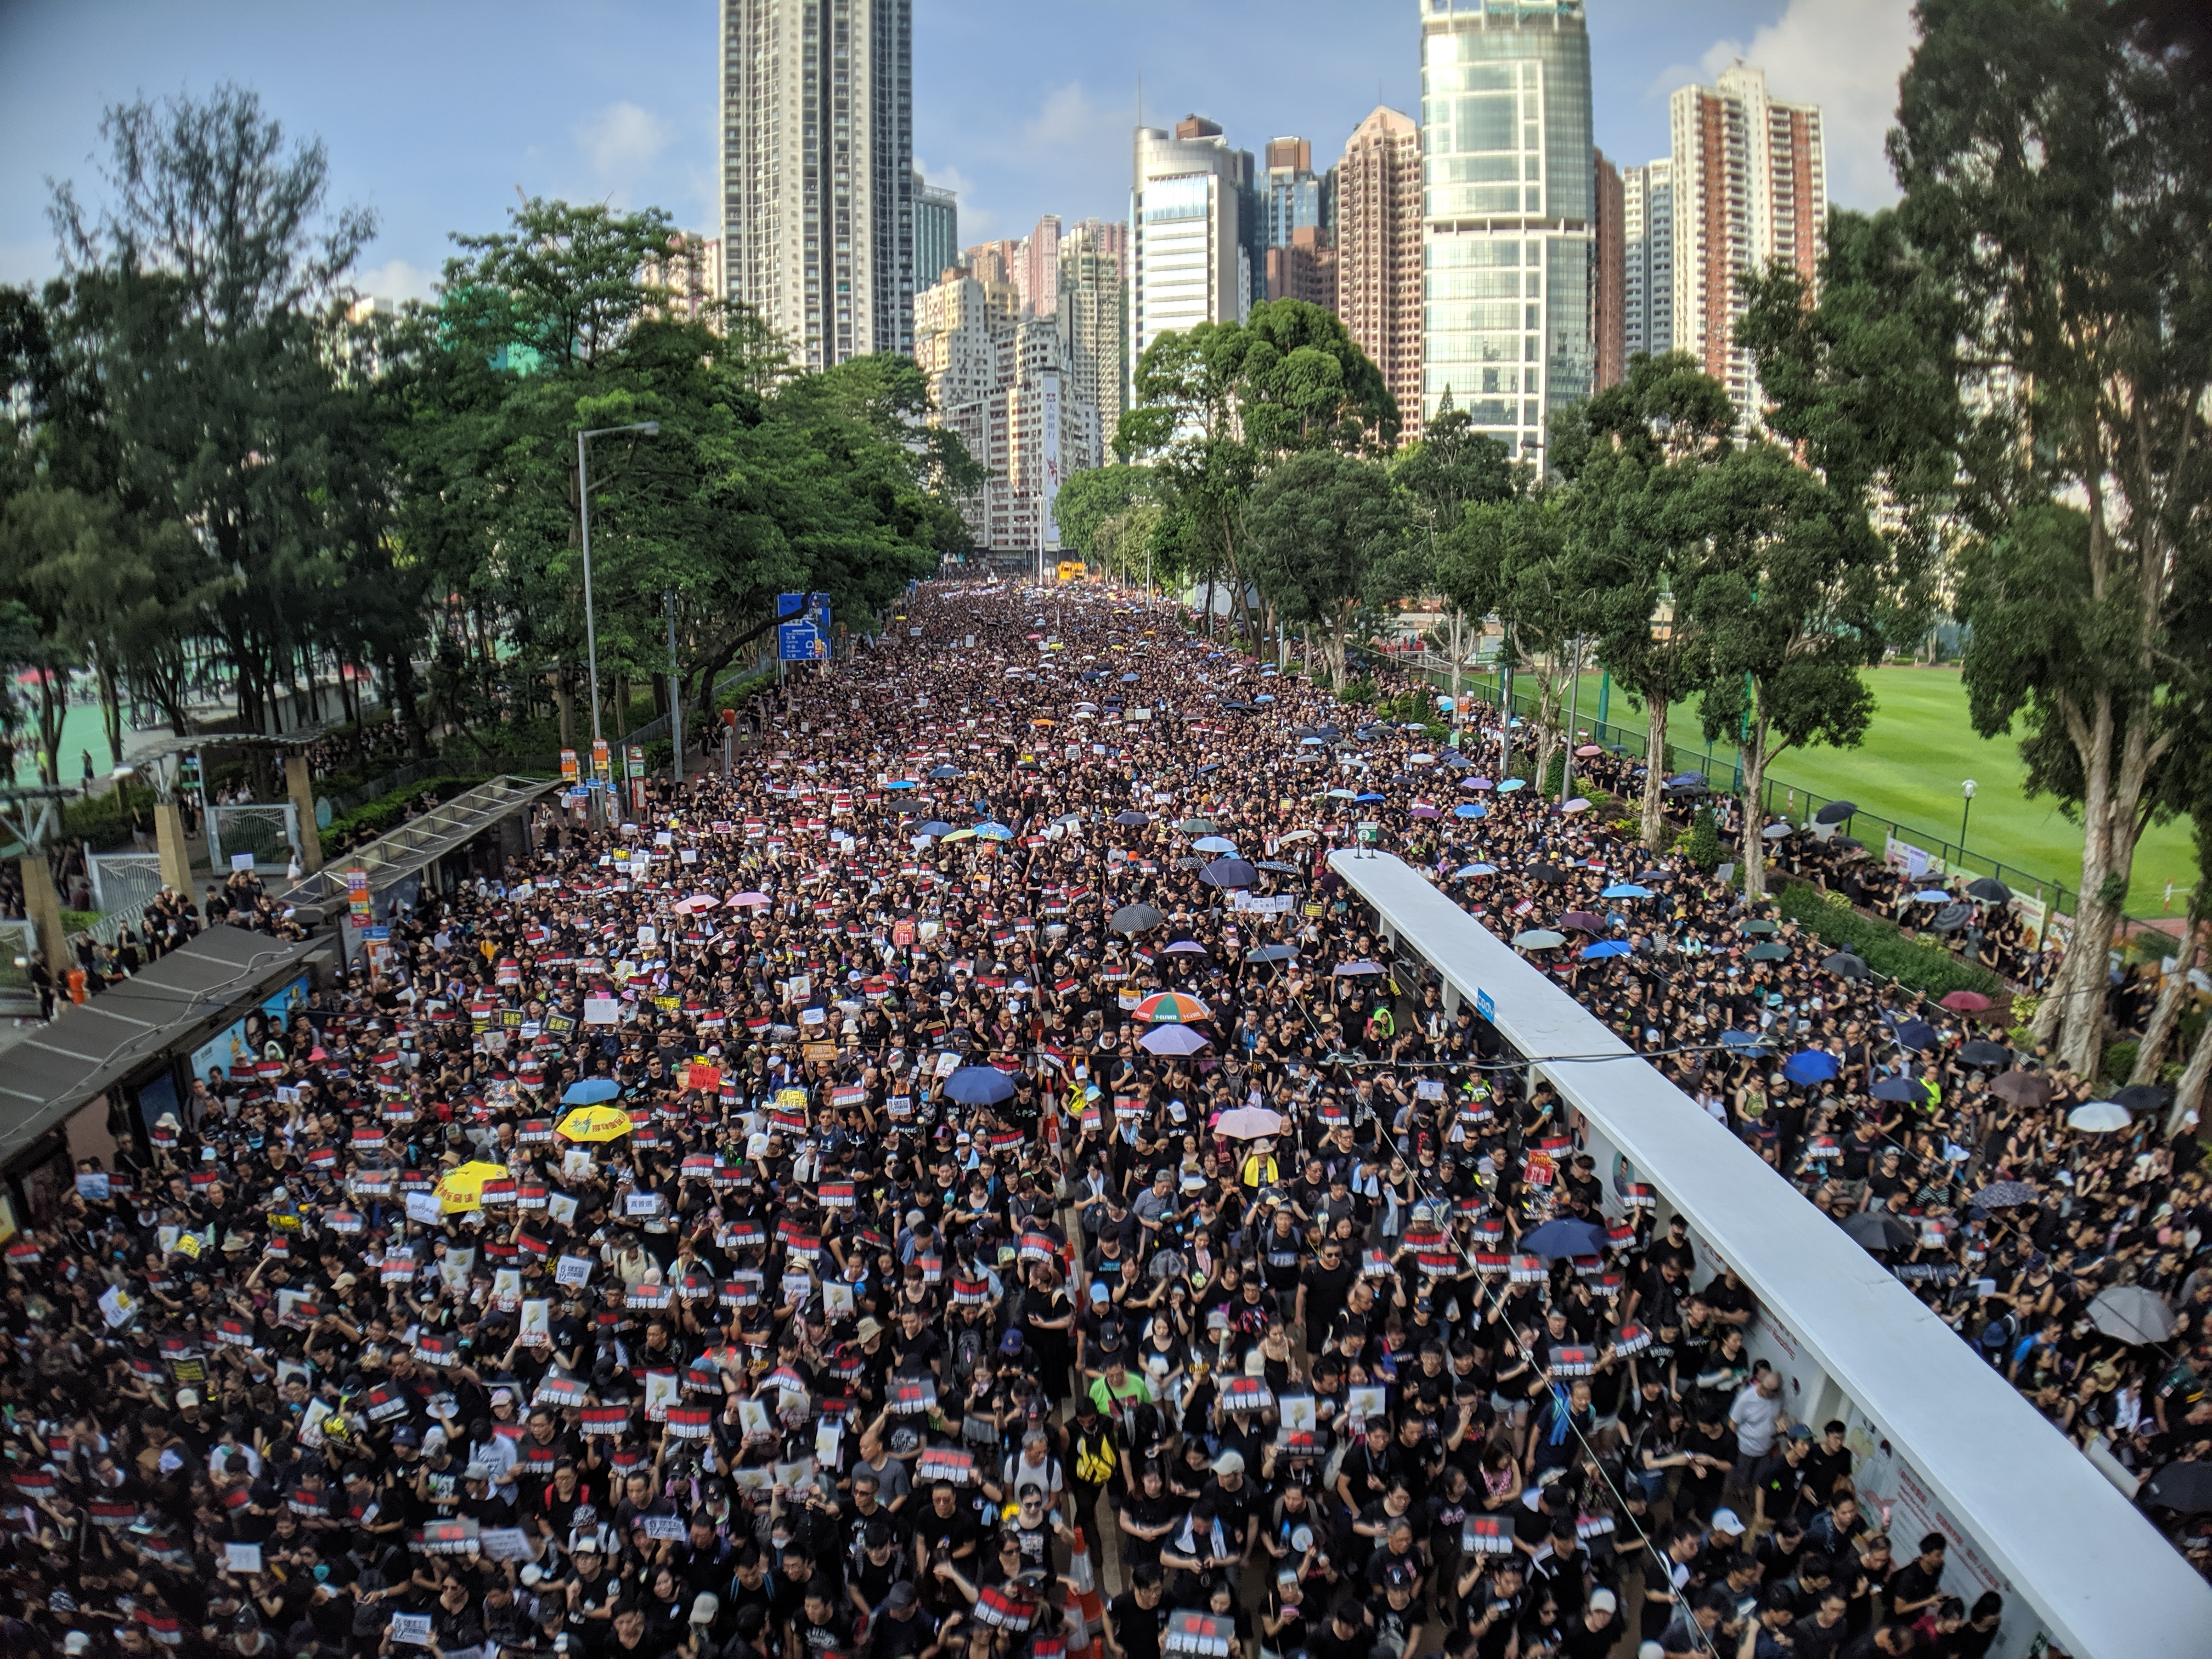 20191204 hong kong rally.jpg